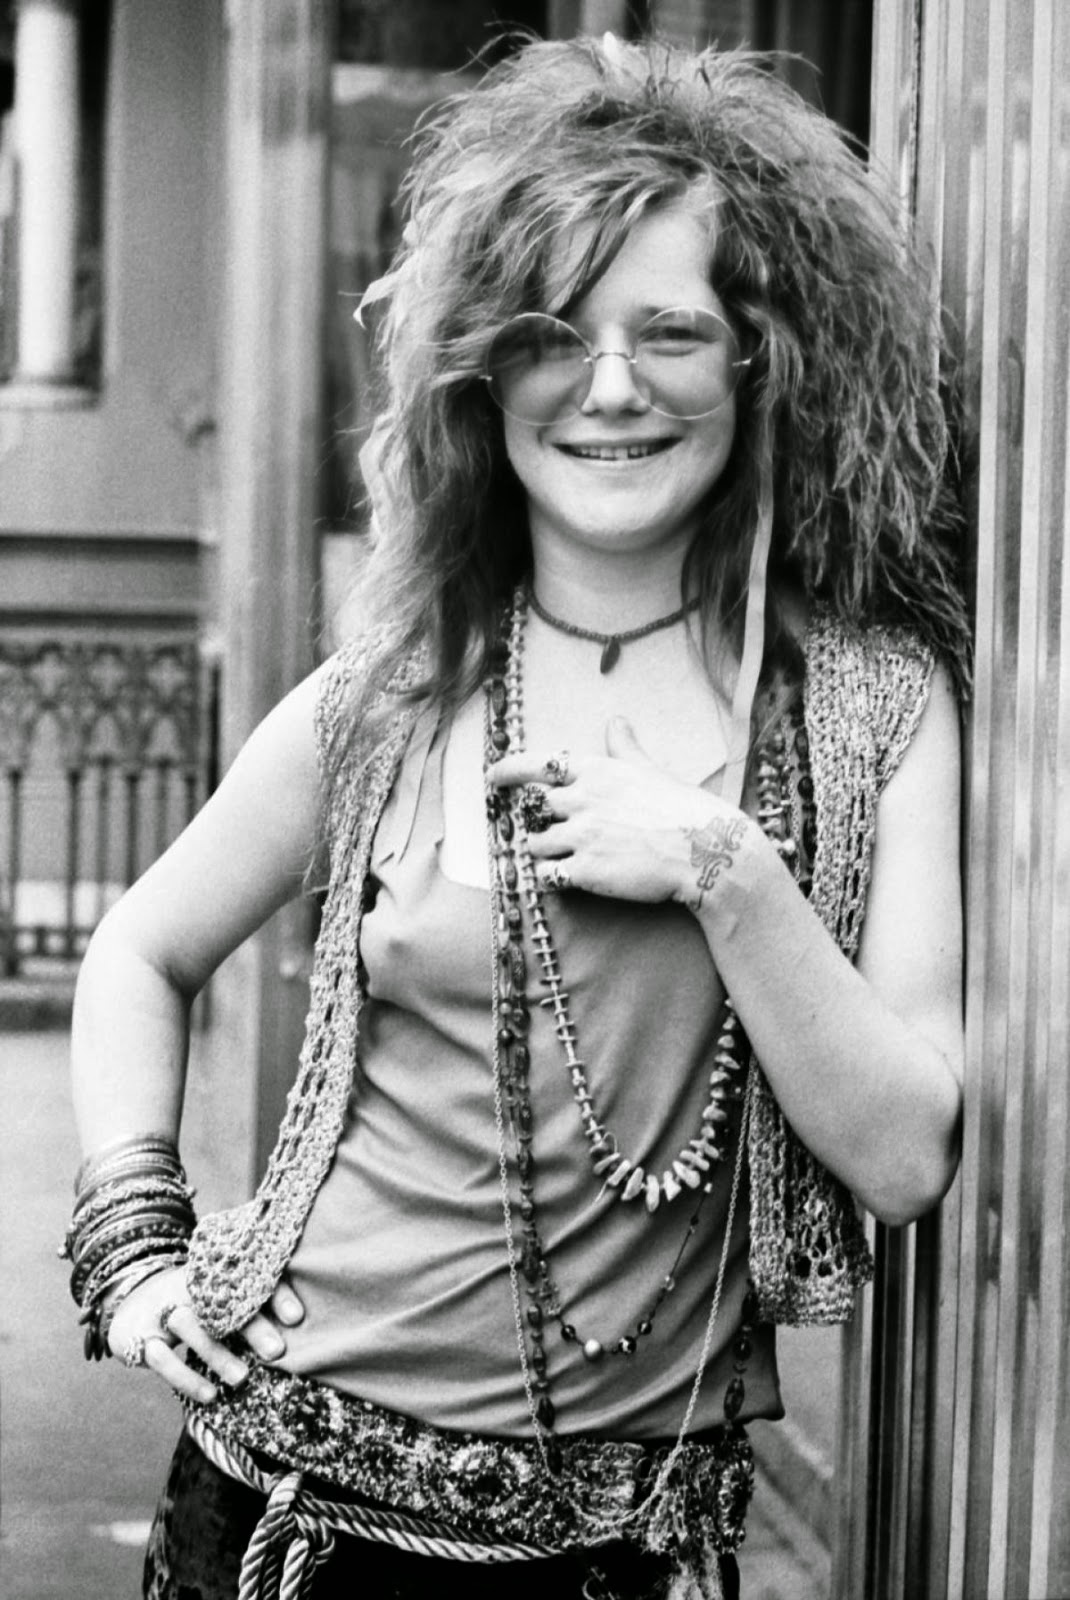 celebs who died young Janis Joplin